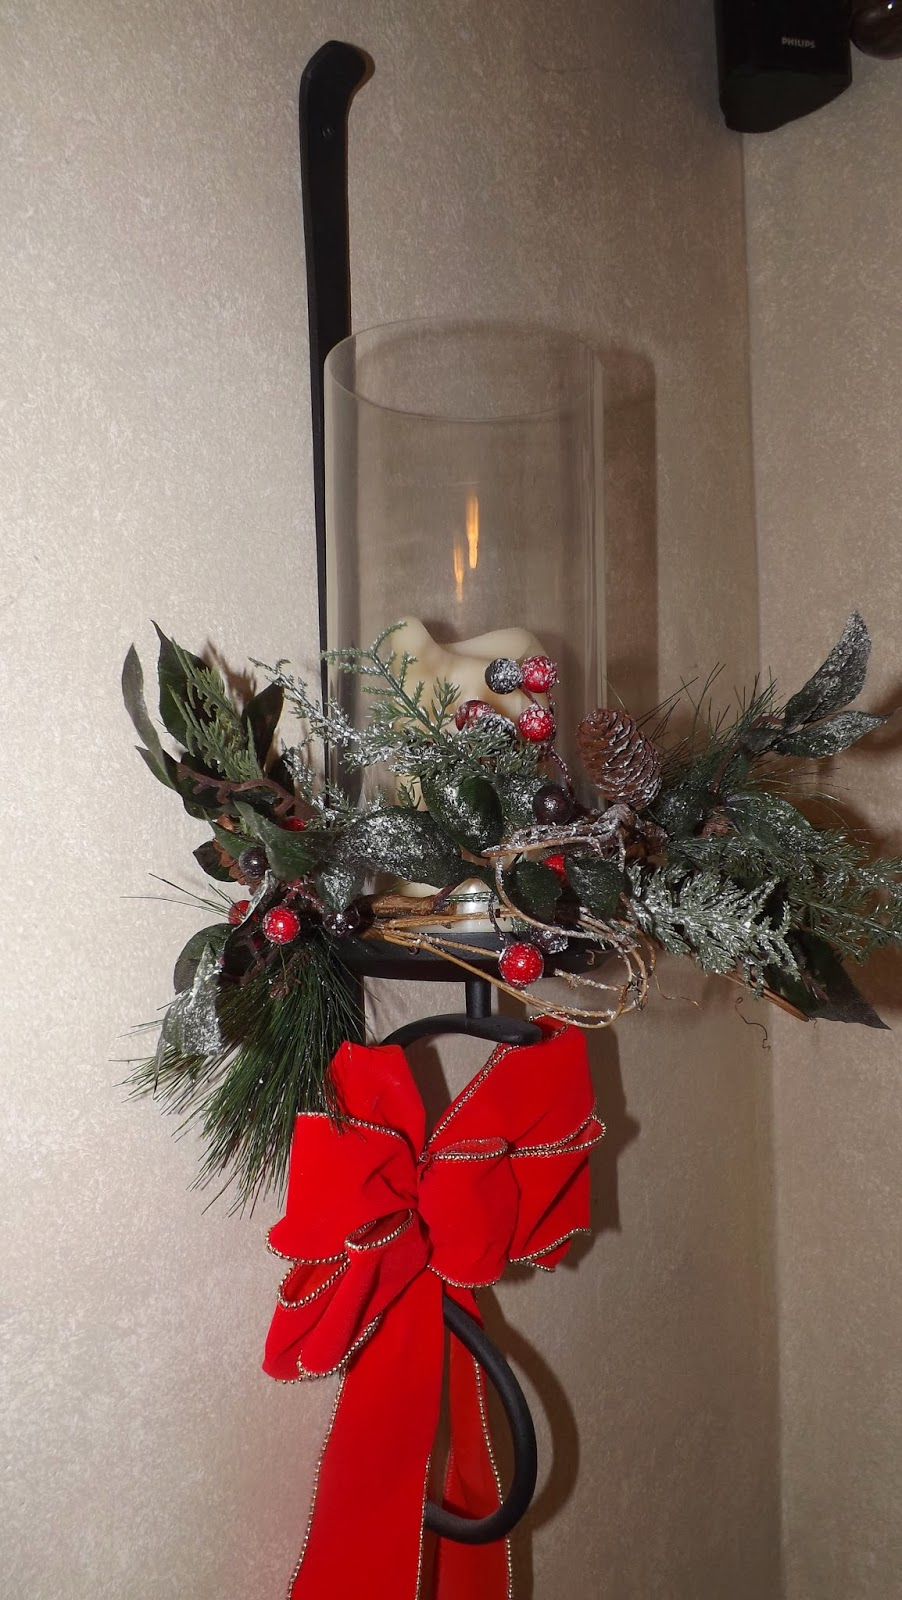 HOME | FOOD | GARDEN: Wall Sconces Decorated for Christmas